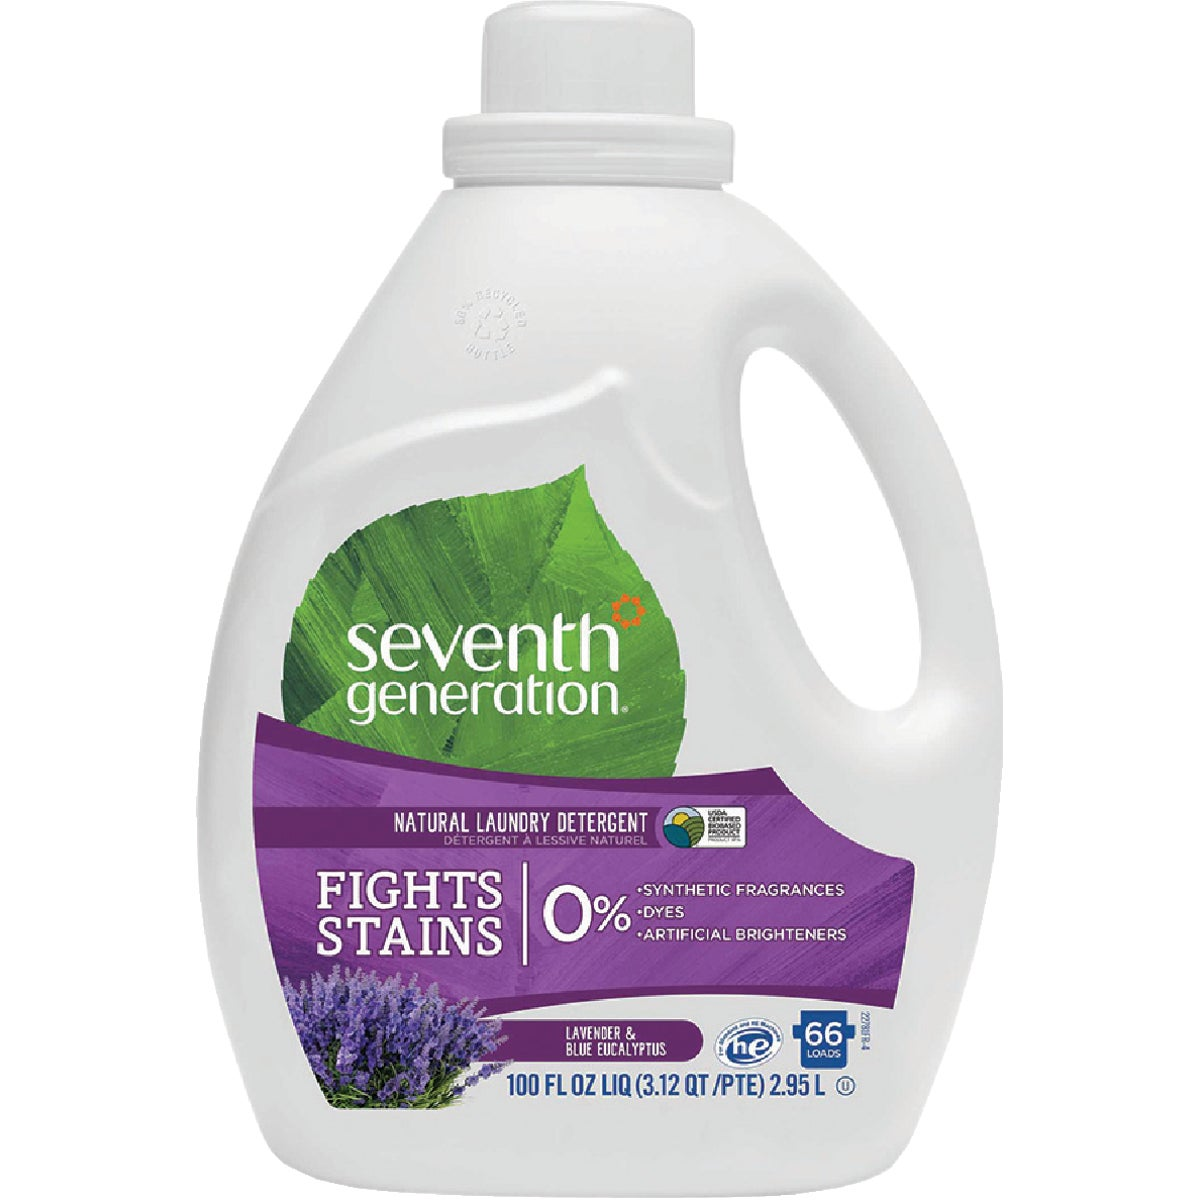 100OZ 2X NATRL DETERGENT - 10732913227812 by Seventh Generation